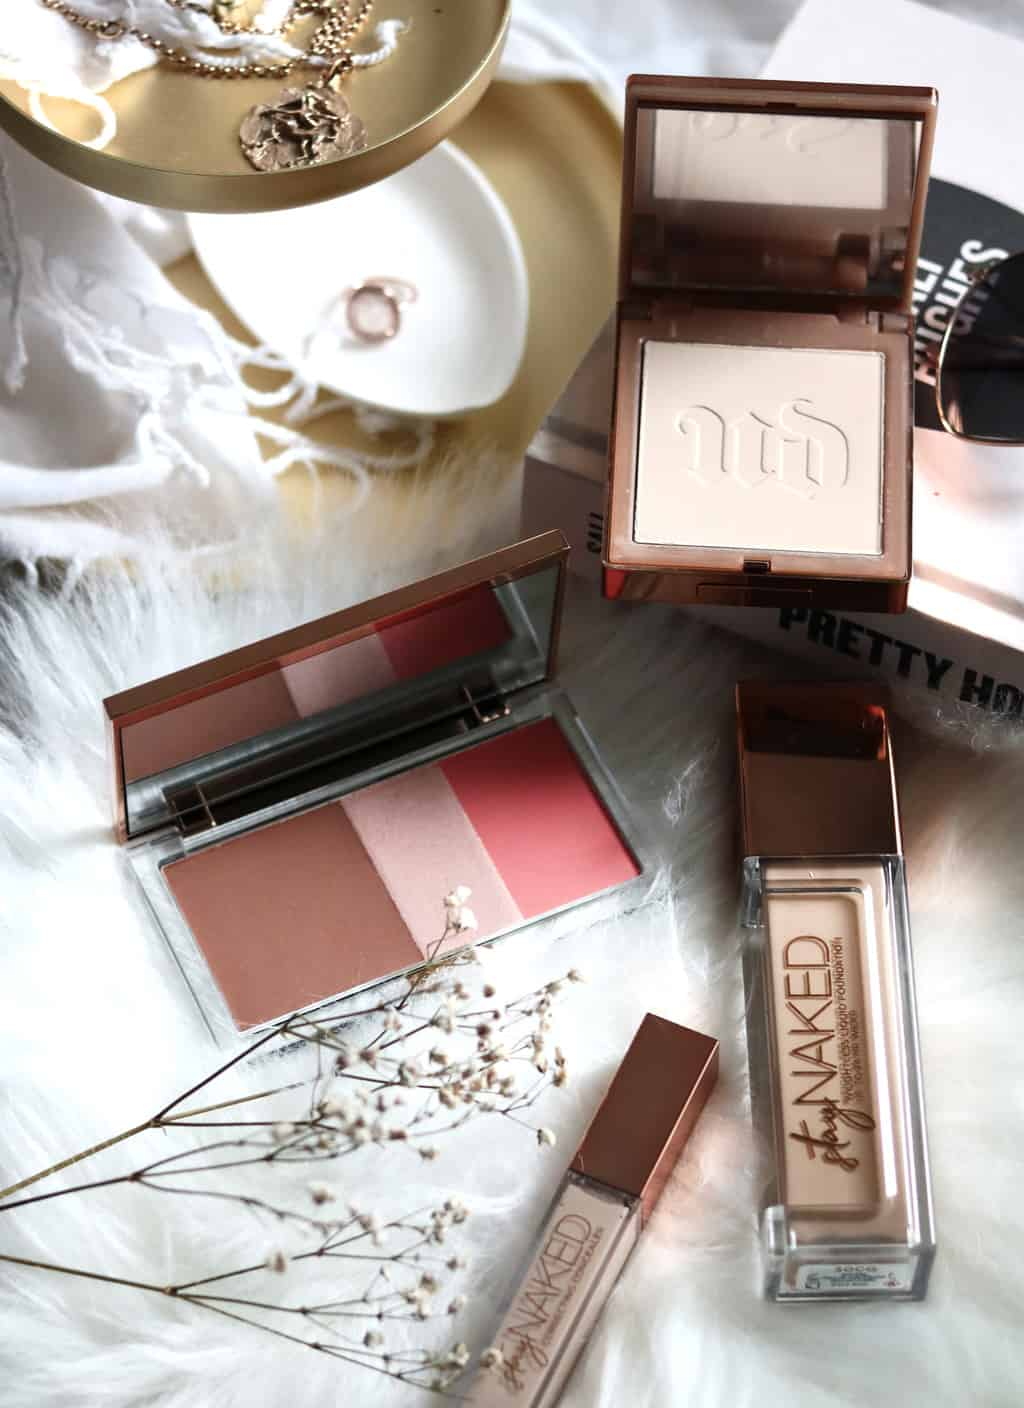 Testing Out the Urban Stay Naked Complexion Revamp